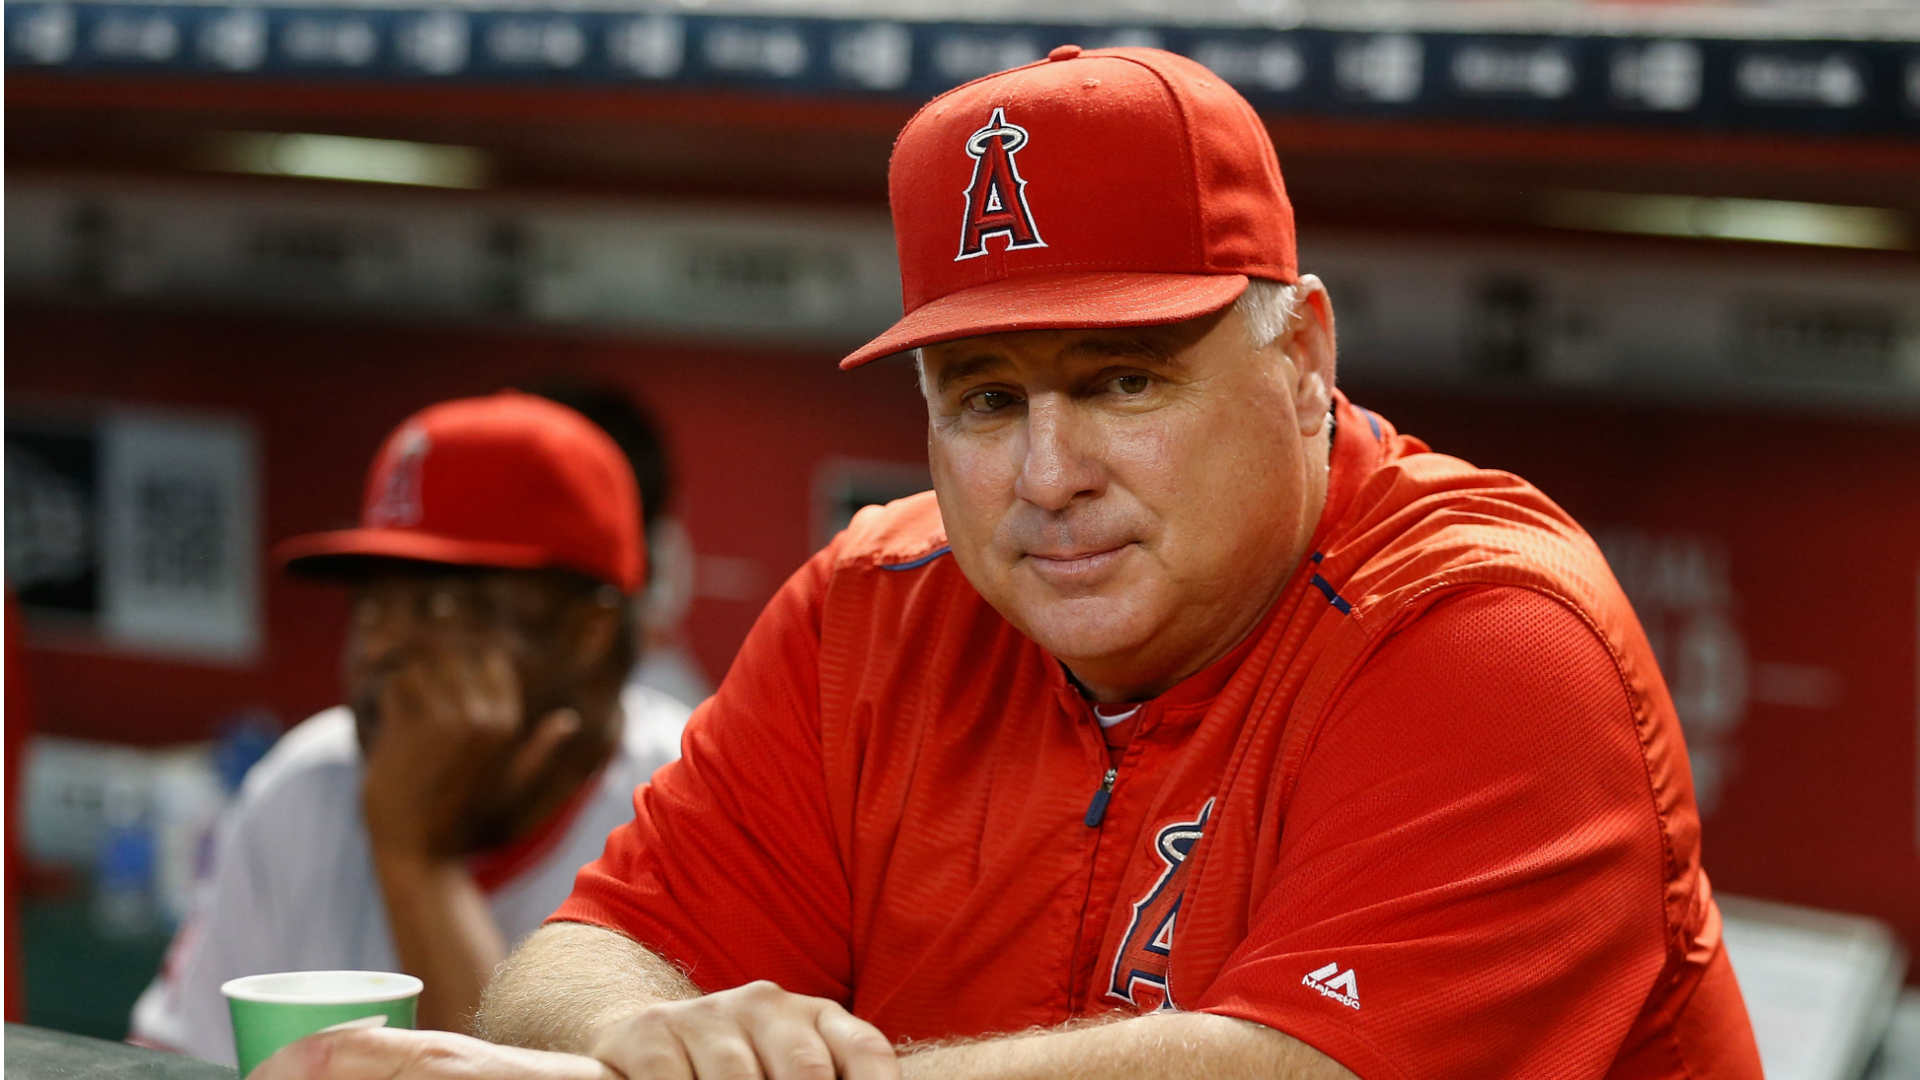 Angels manager Scioscia steps down after 19 years